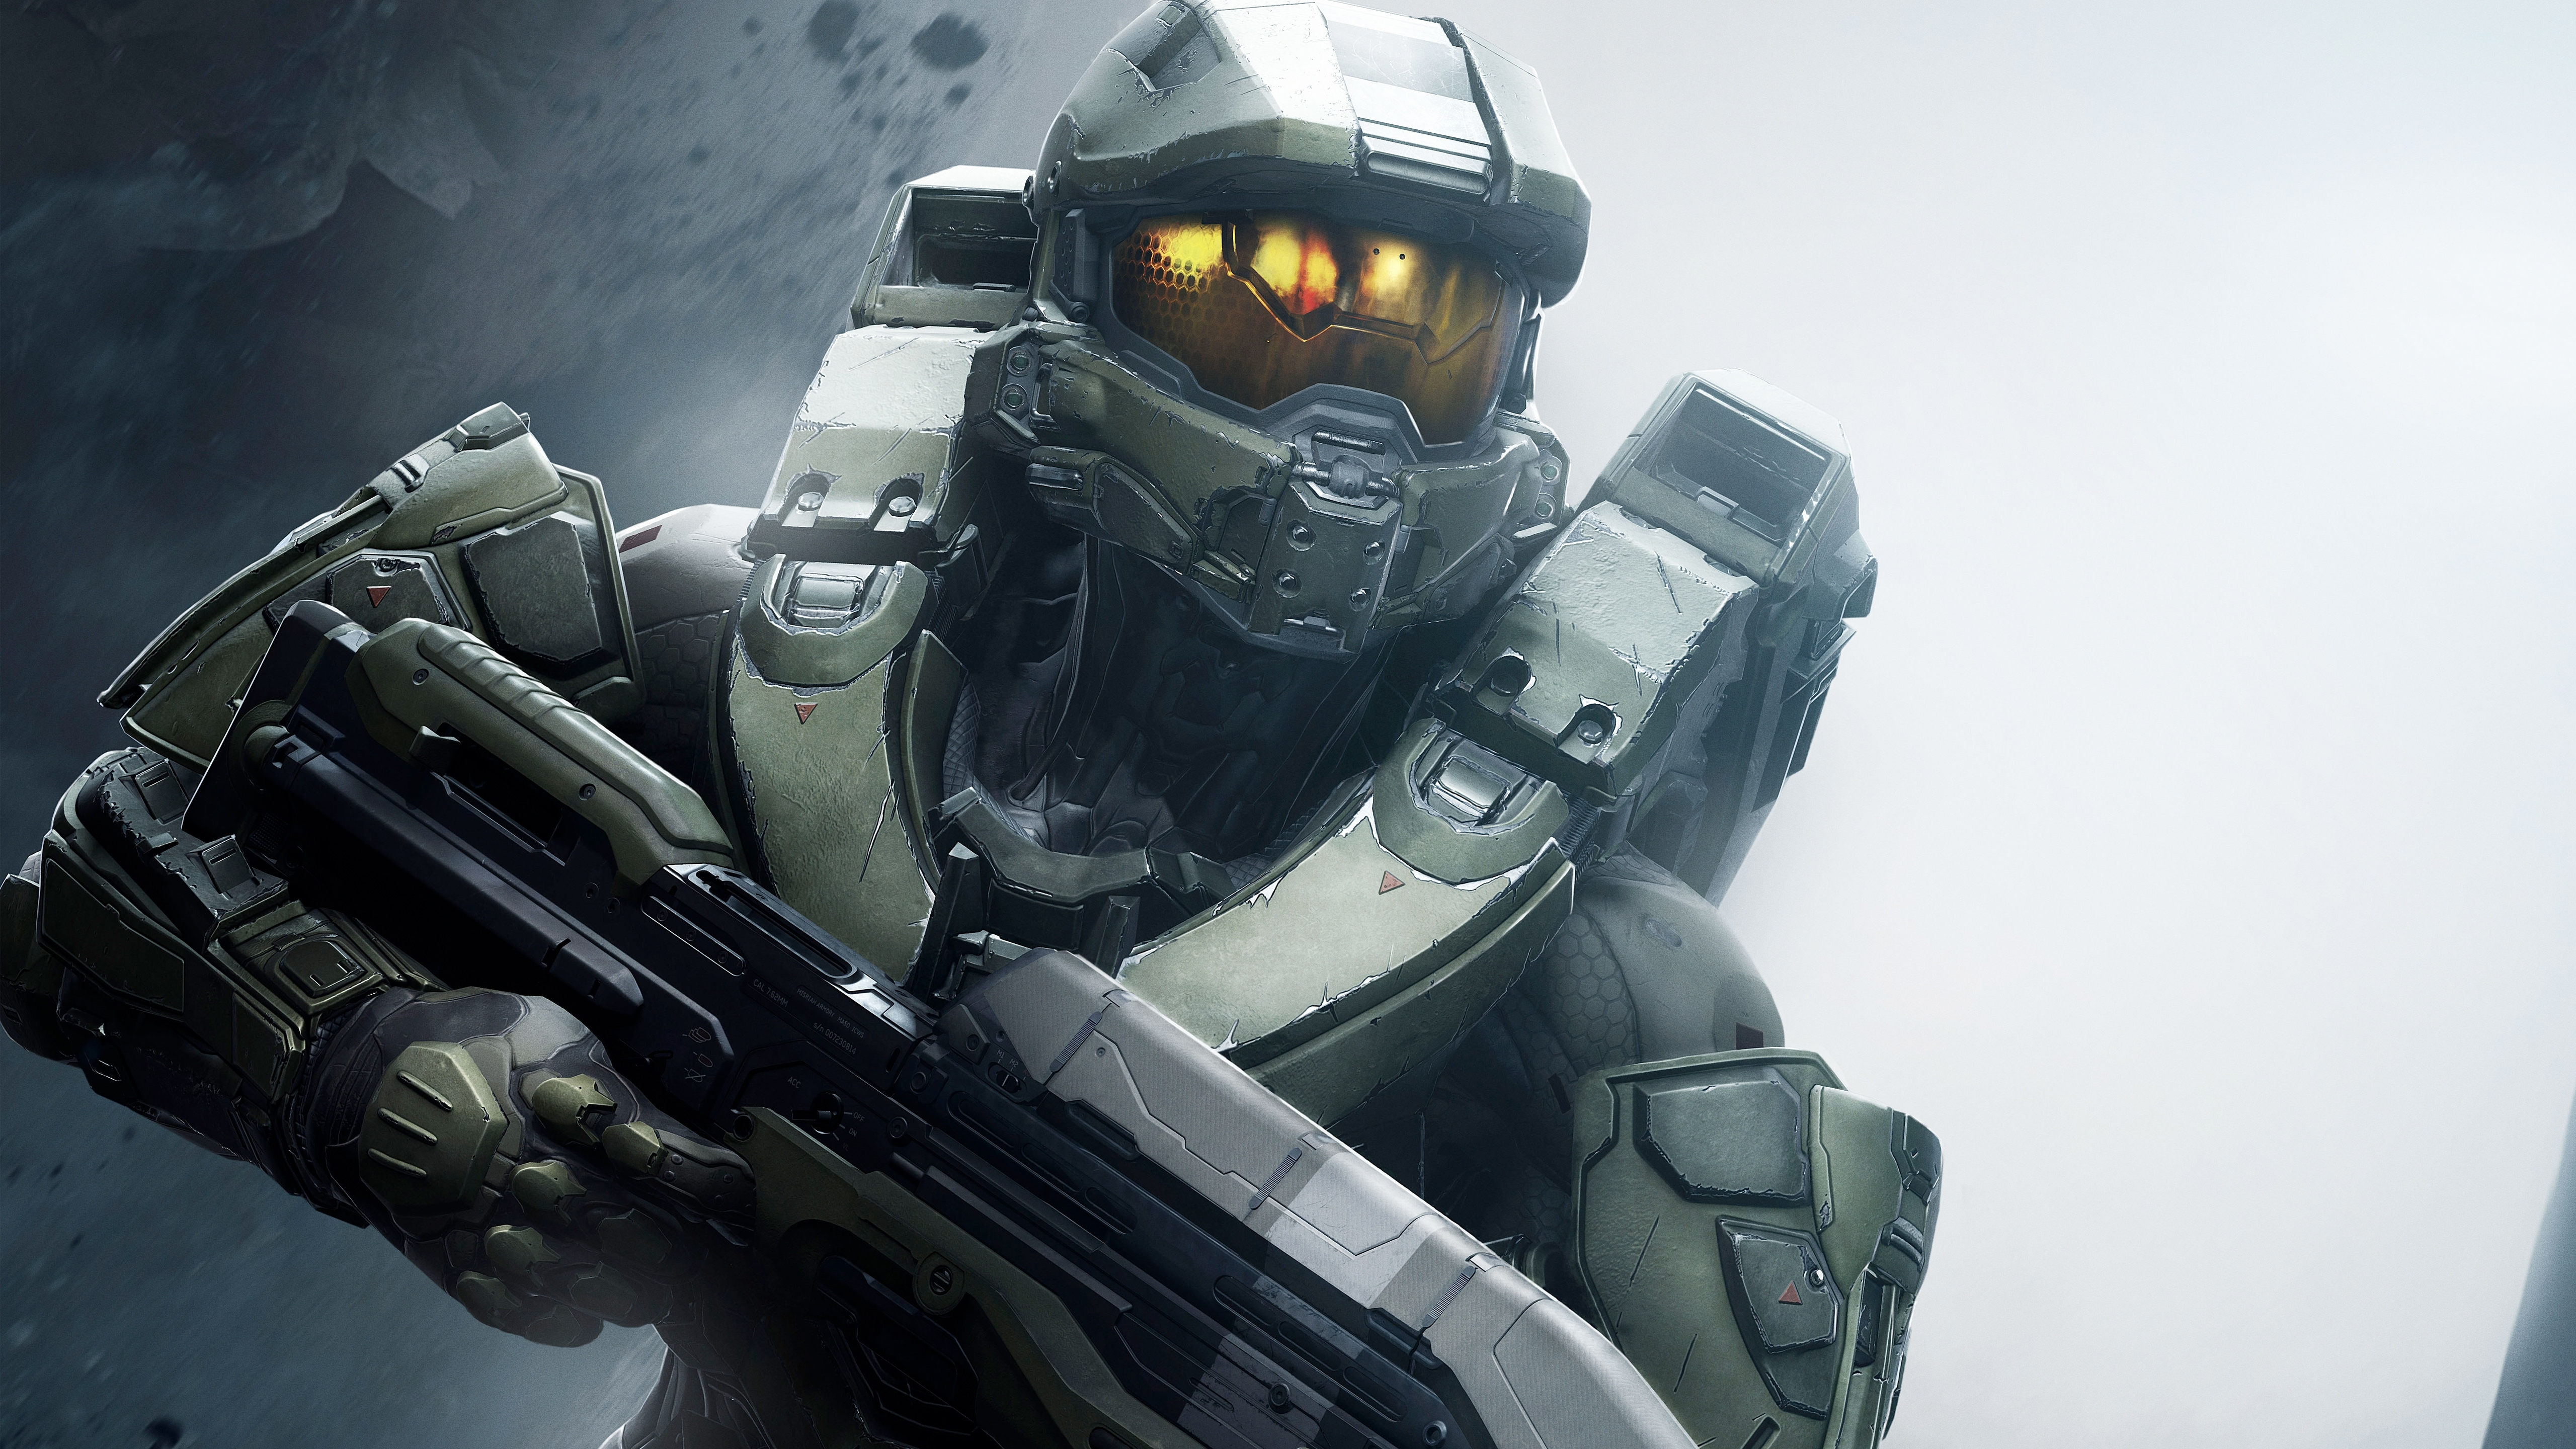 wallpaper halo 5: guardians, master chief, 5k, games, #5388